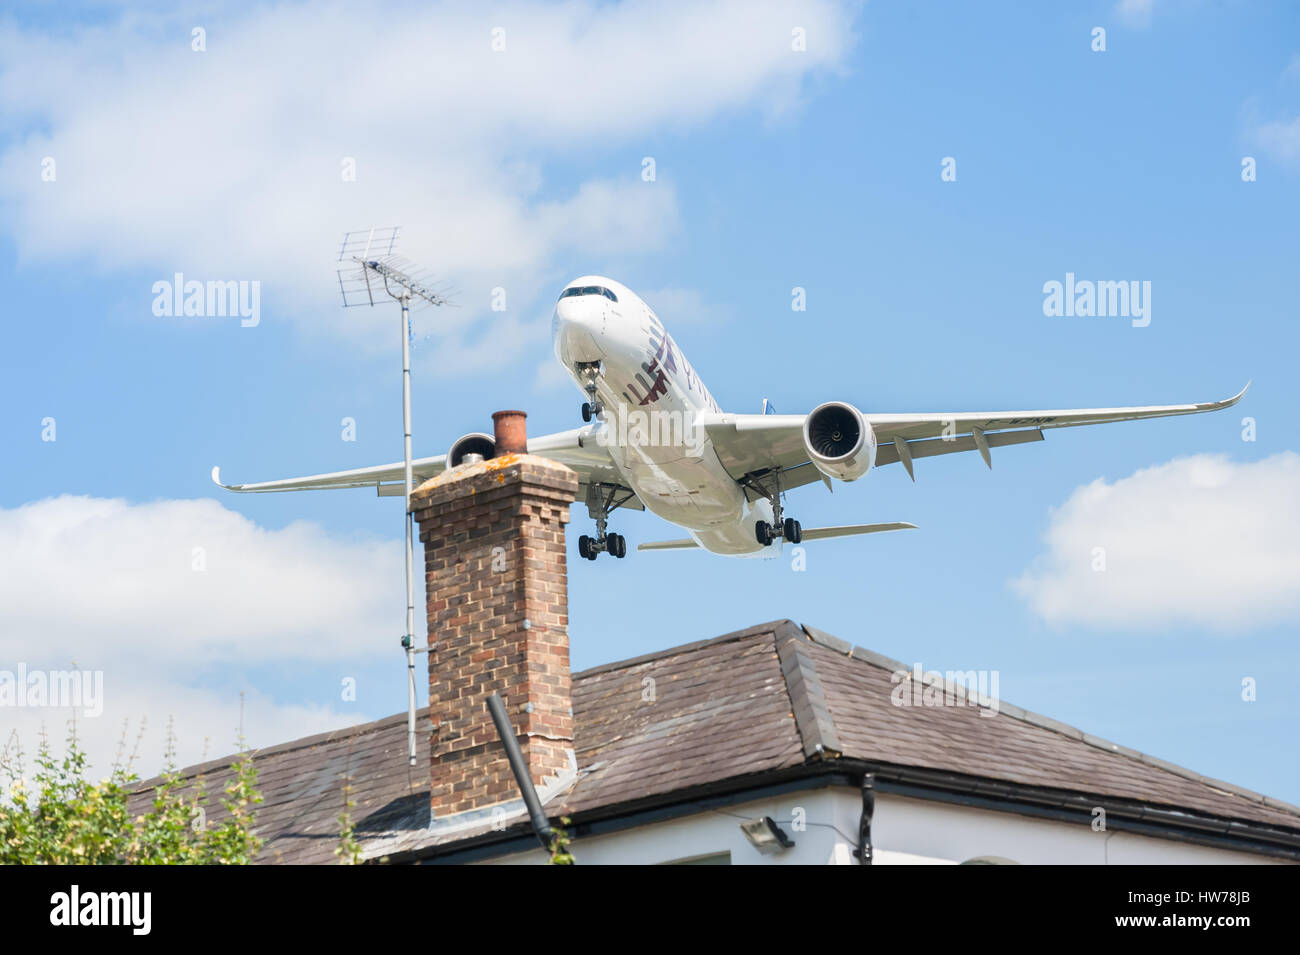 Qatar Airways Airbus A350 sur l'approche à l'atterrissage au-dessus des toits de participer au Farnborough, Photo Stock